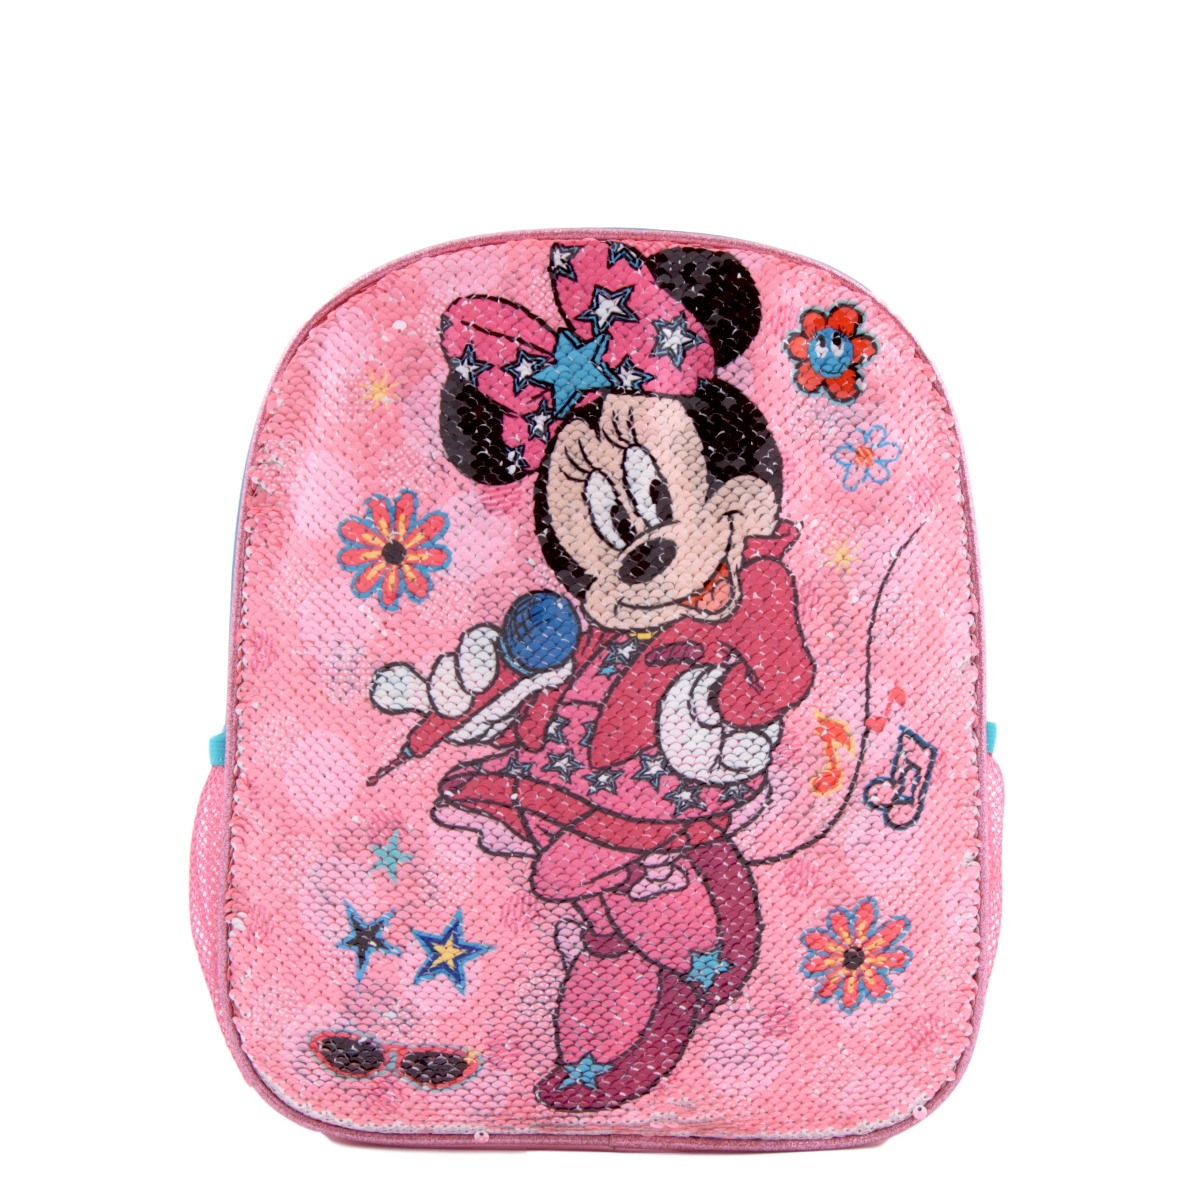 Ghiozdan cu paiete reversibile Disney Minnie Mouse